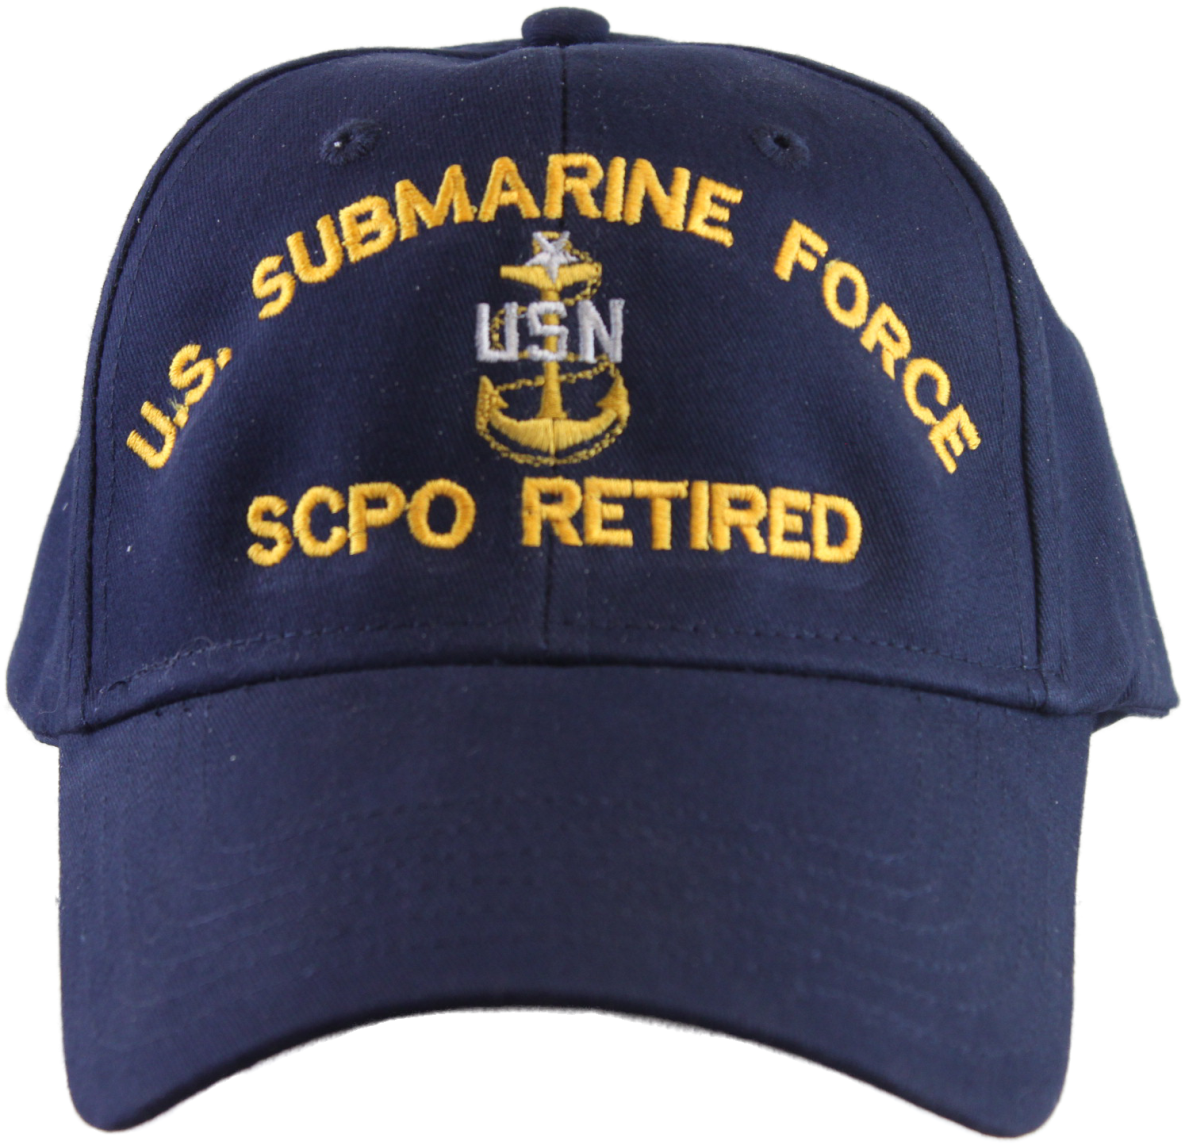 US Submarine Force SCPO Retired Ball Cap. Image 1. Loading zoom 51a4fb78015